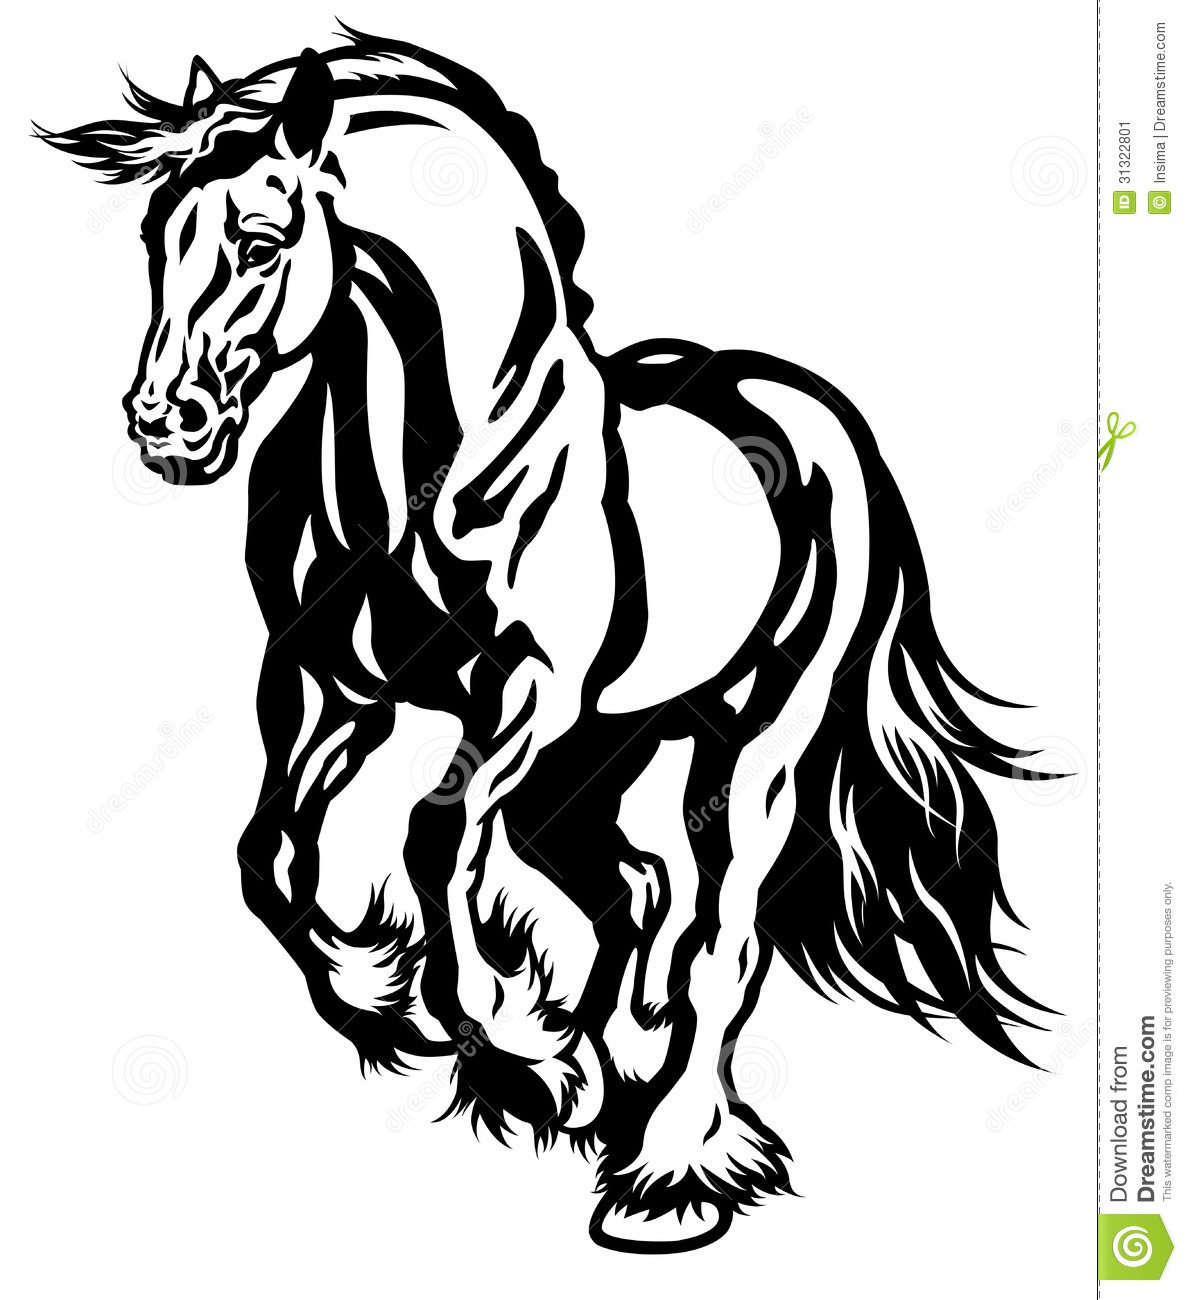 black and white running horse clipart running horse cklip art running horse clip art free